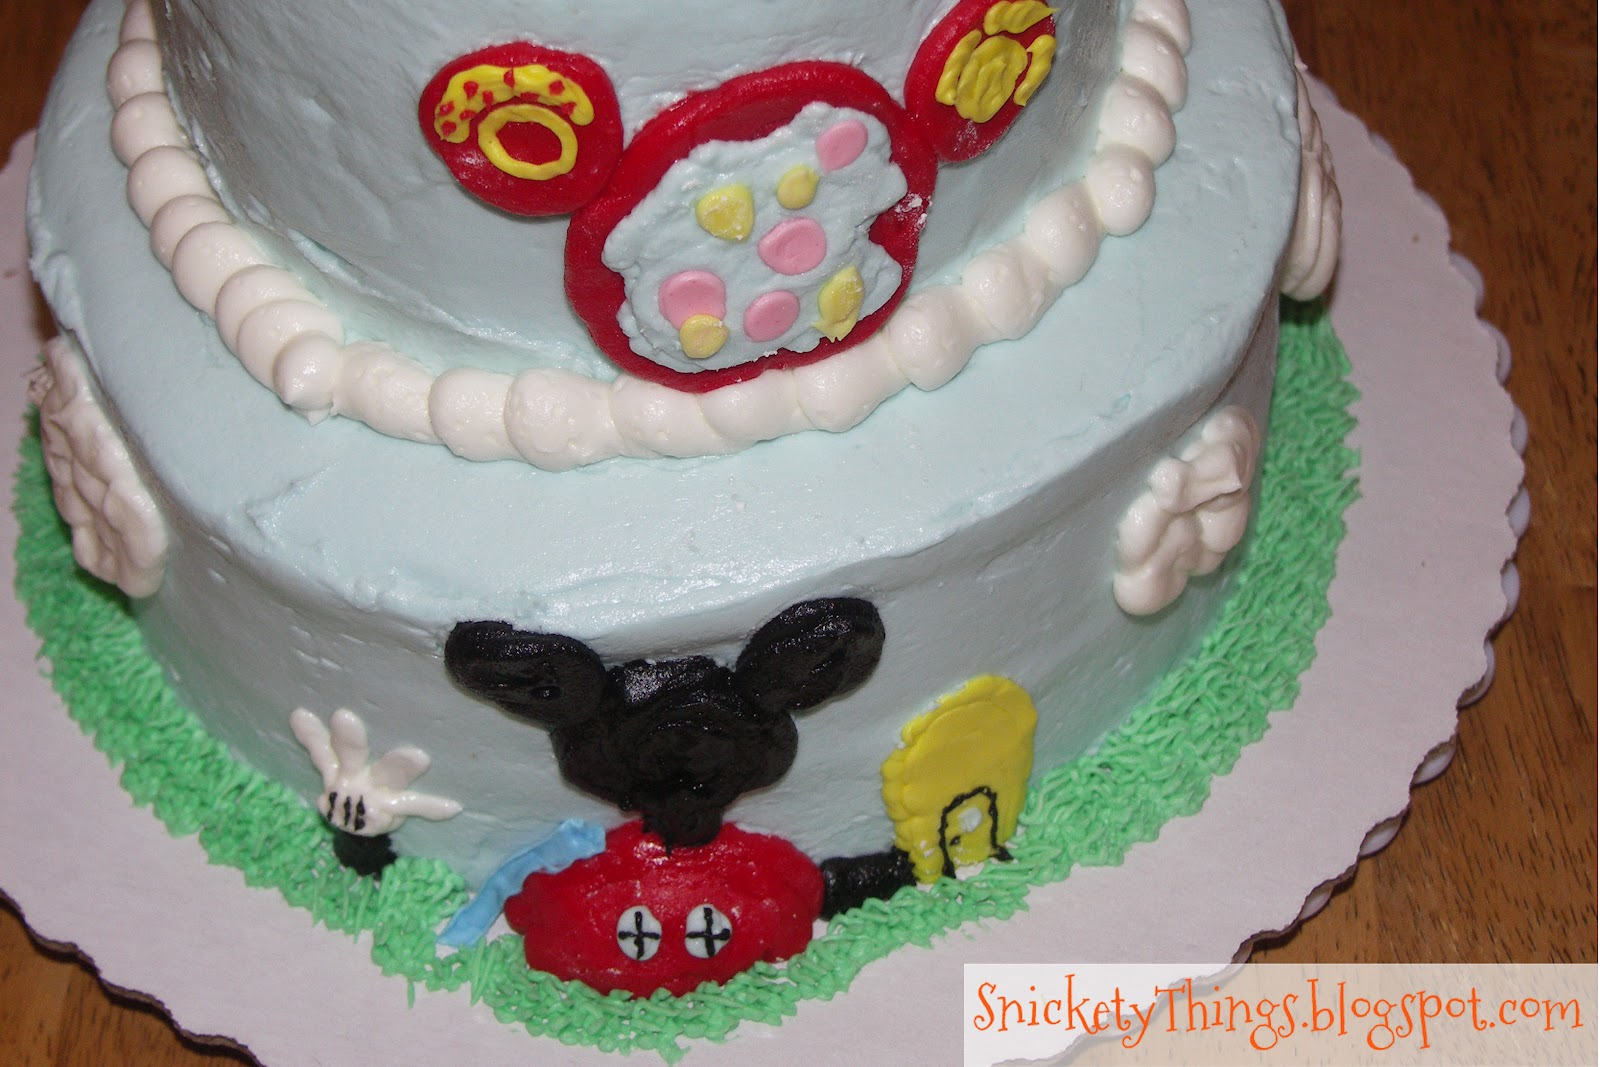 Snickety Things Adventures in cake Mickey Mouse Clubhouse